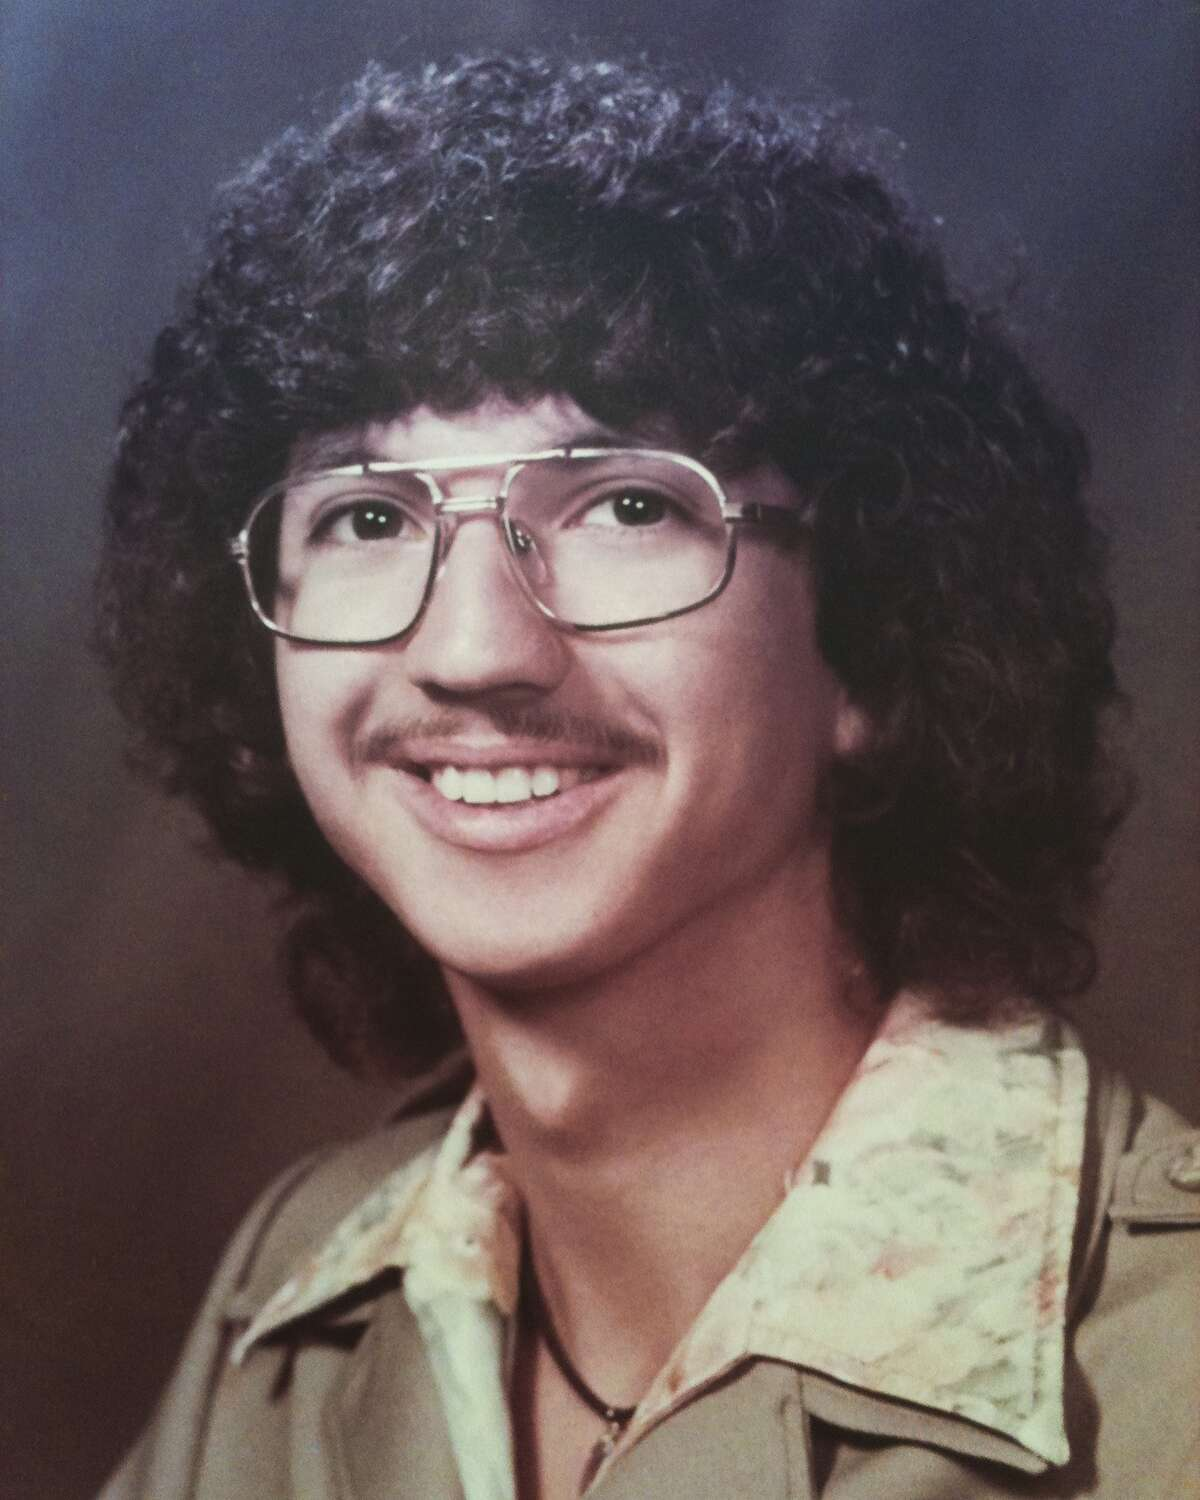 In high school and in college, I had hair like a rock star. That was my goal, at least.